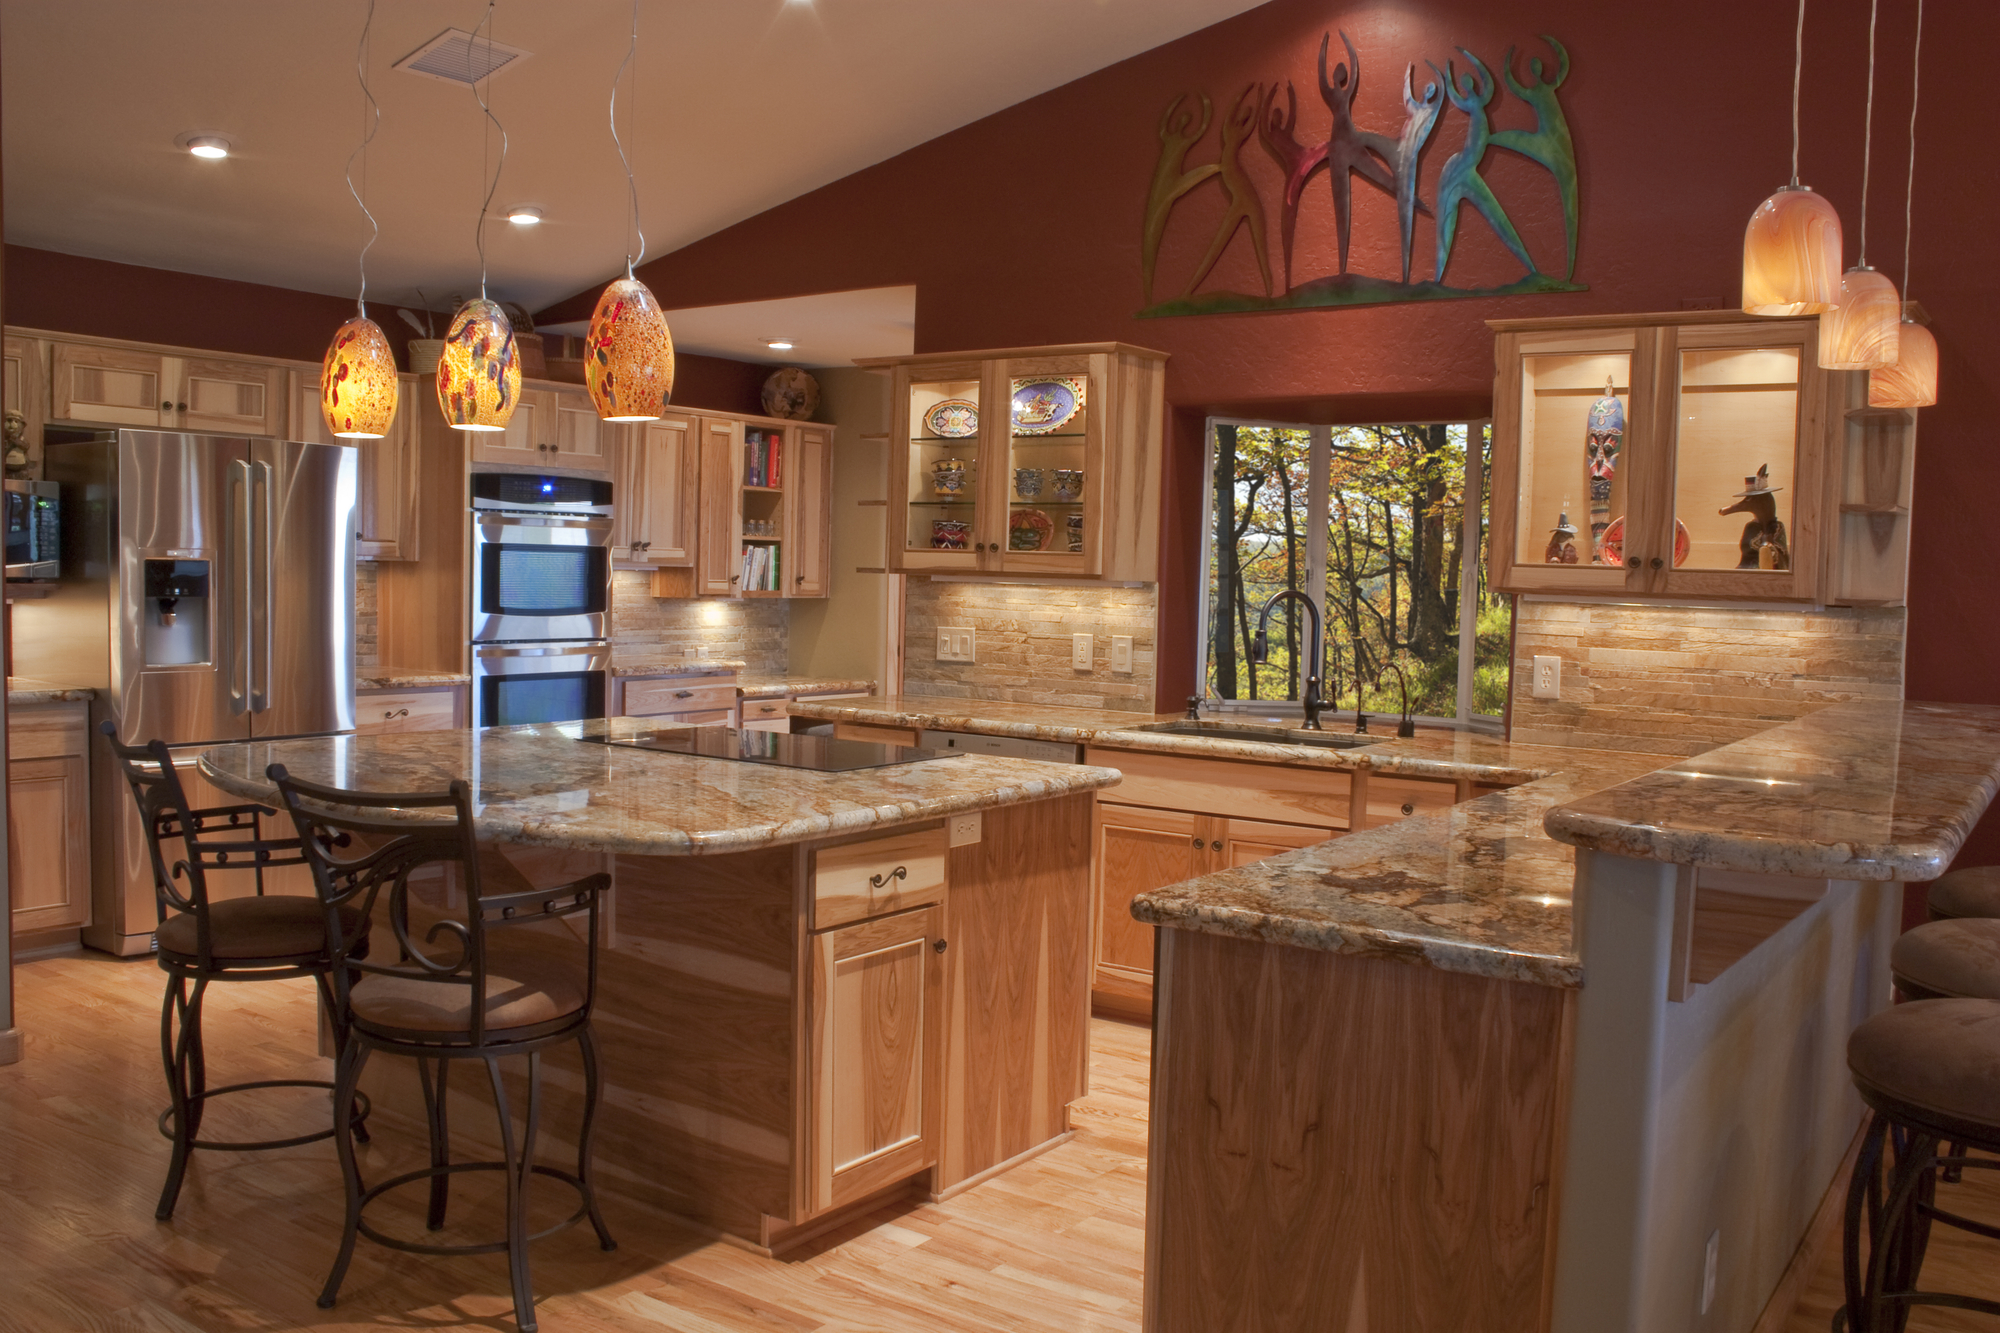 Kitchen Design Winston Salem Nc Bathroom Remodeling Services